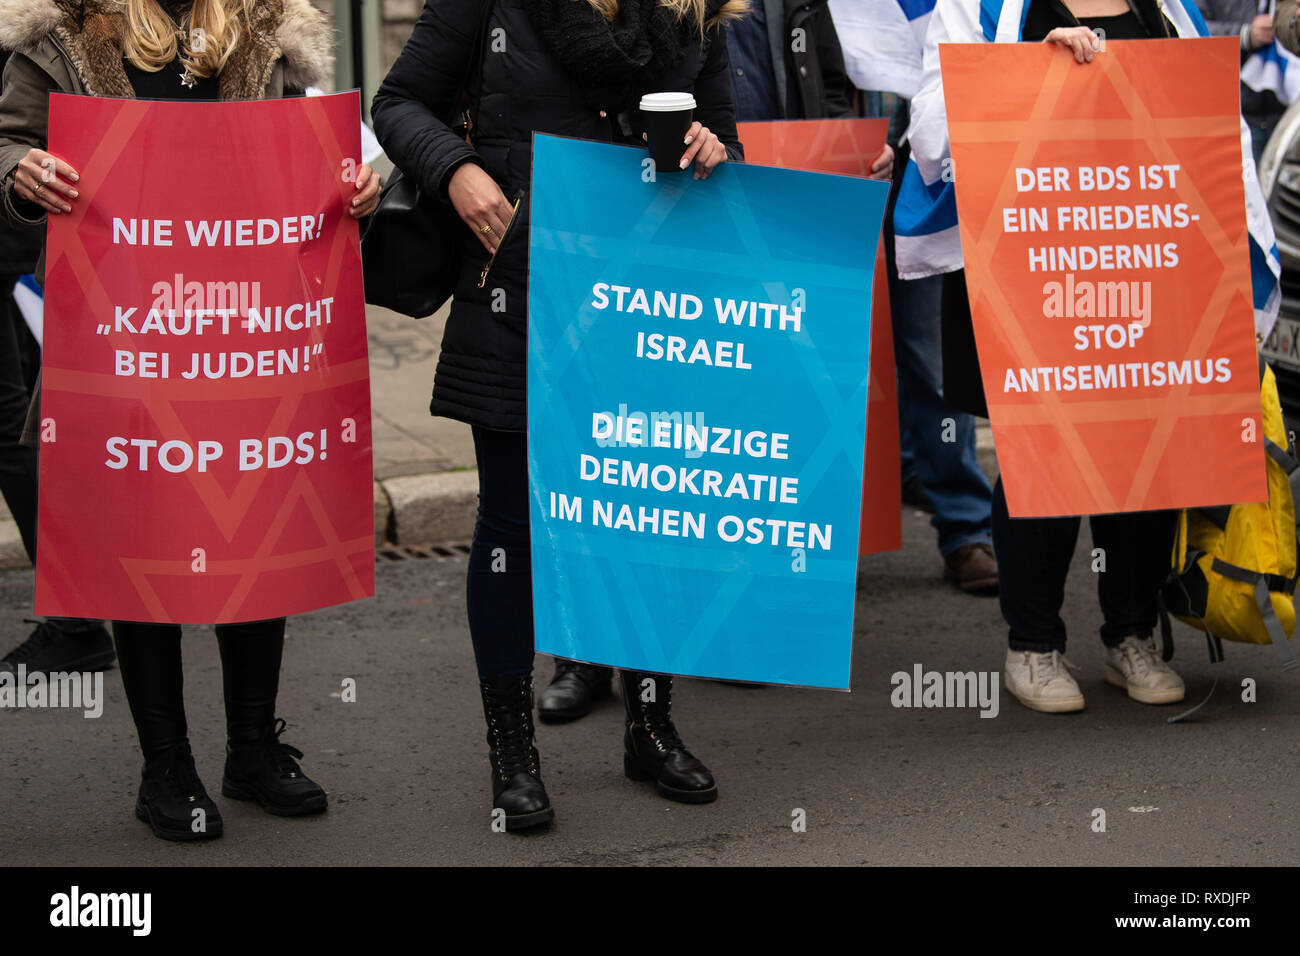 Göttingen, Germany. 9th March 2019. Participants with posters of the Alliance against Anti-Semitism and Anti-Zionism 'Jachad' protest under the motto 'No peace with the enemies of Israel' during the awarding of the Göttingen Peace Prize 2019 to the association 'Jewish Voice for Just Peace in the Middle East'. The Central Council of Jews in Germany accuses the 'Jewish Voice' of supporting the anti-Semitic boycott movement BDS (Boycott, Di Cre Credit: dpa picture alliance/Alamy Live News - Stock Image